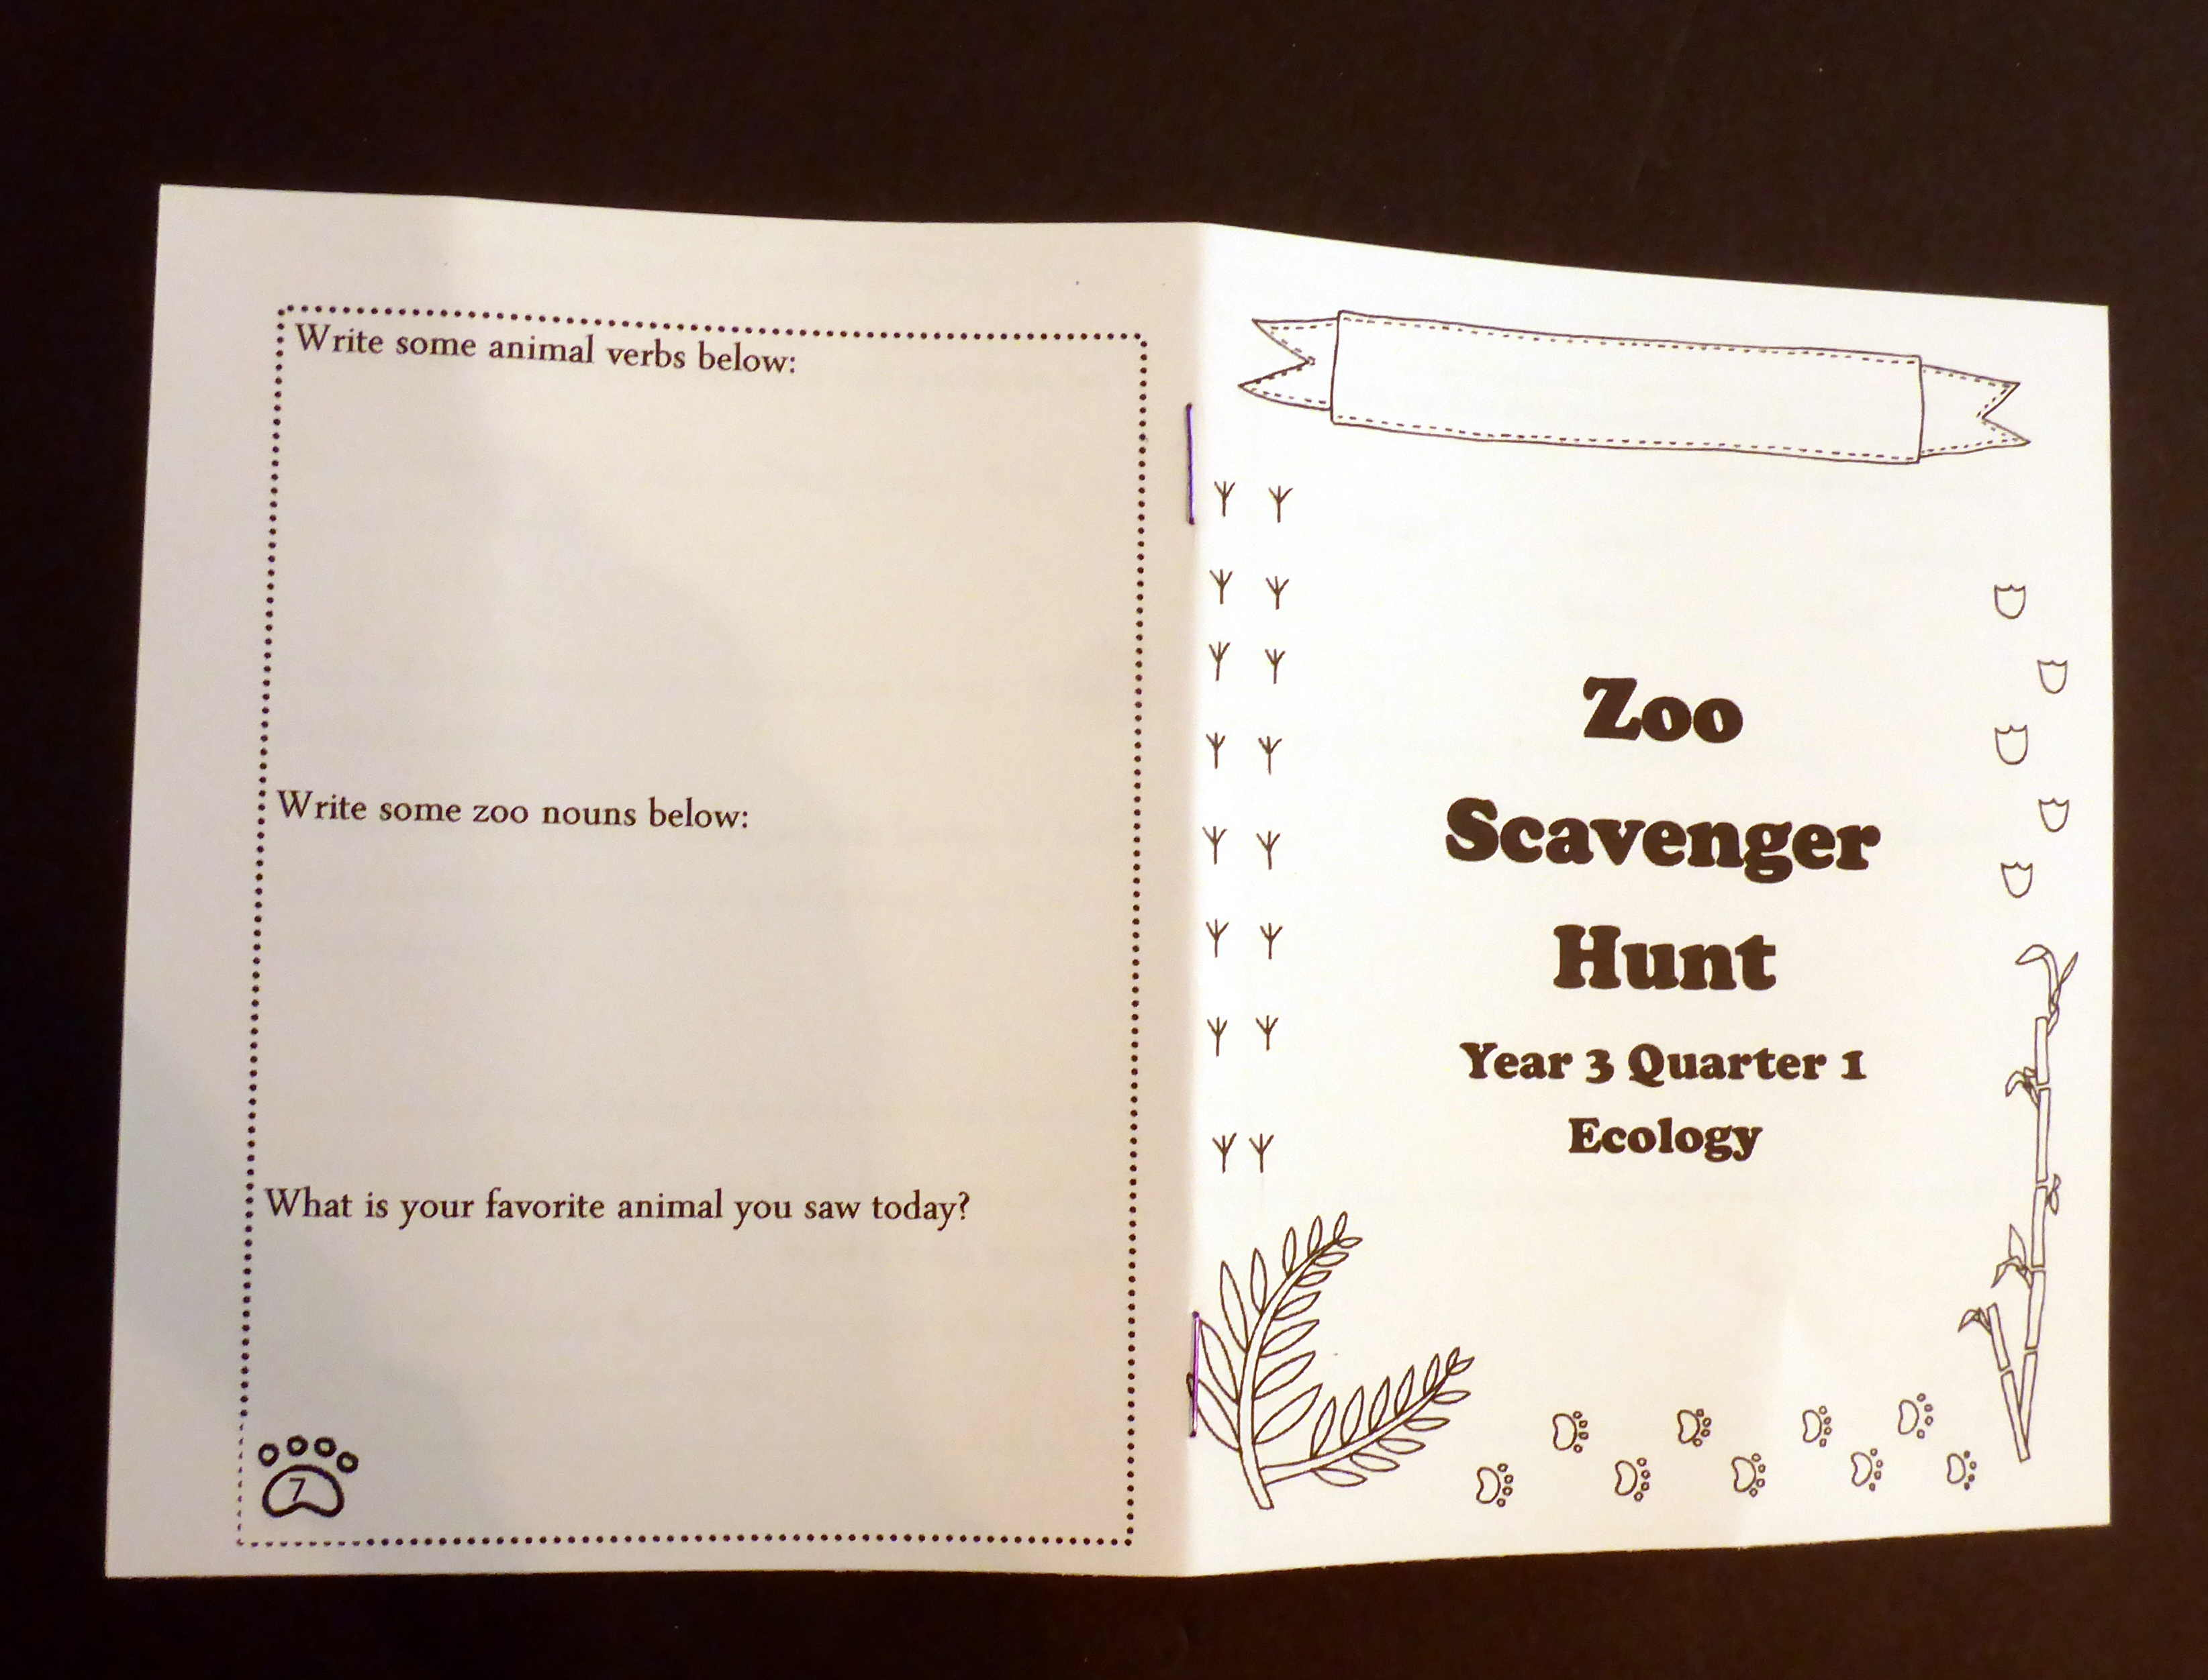 Zoo Scavenger Hunt Printable For An Ecology Field Trip